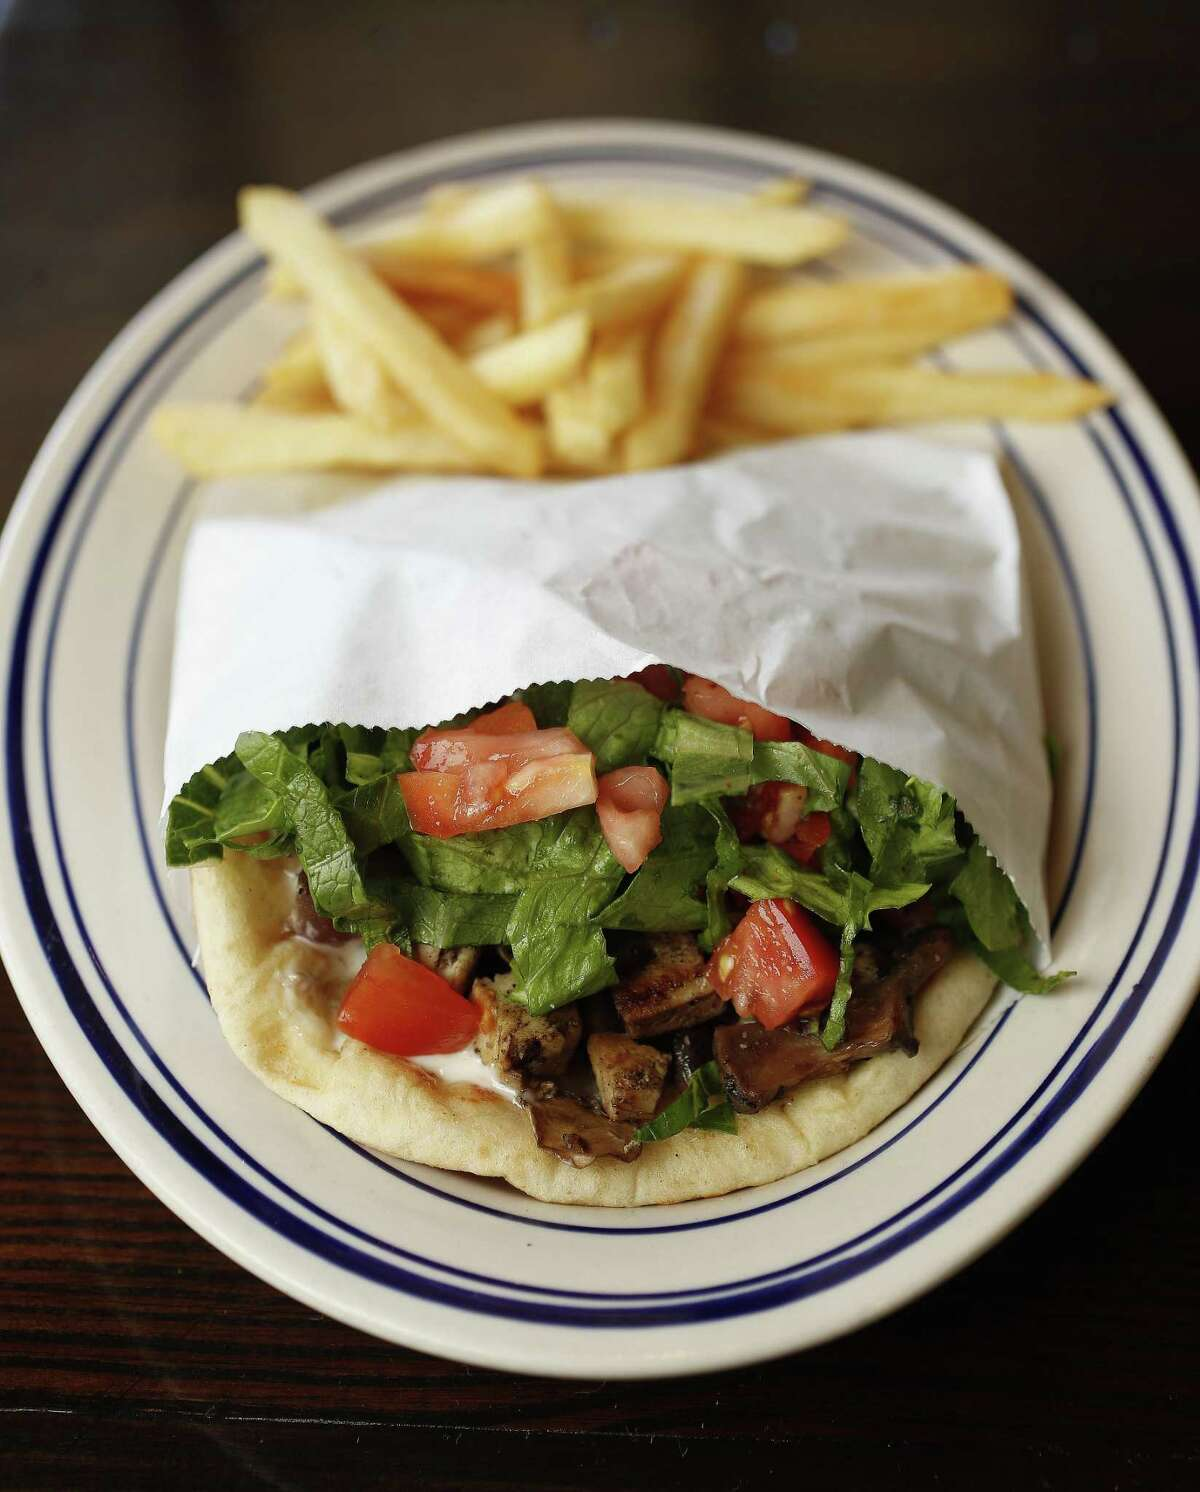 Island Grill, a locally owned restaurant serving Mediterranean cuisine, will open in Springwoods Village in mid-2019. Grilled chicken pita with french fries is on the menu.